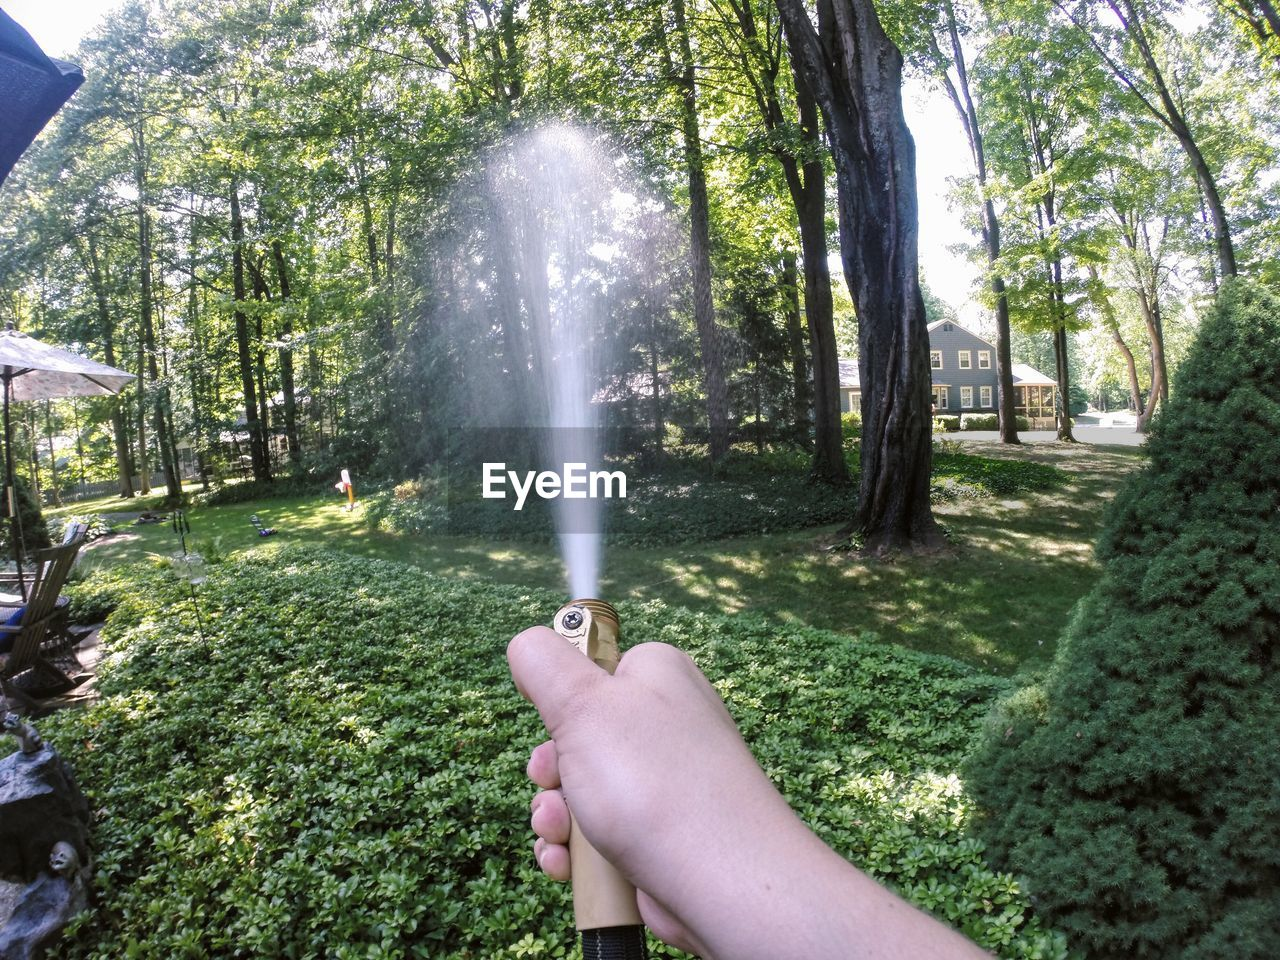 Cropped Hand Spraying Water From Hose In Garden